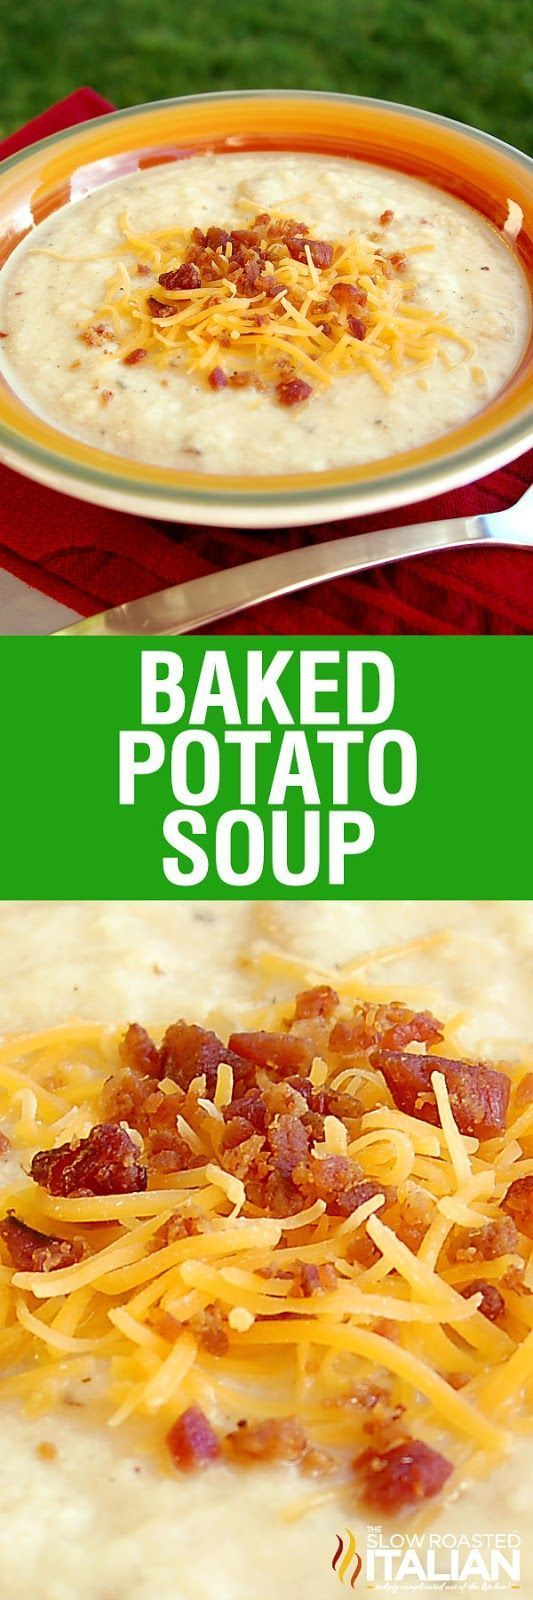 Baked Potato Soup is rich and creamy and has all your favorite potato fixin's cooked right inside this luscious soup. It comes fully loaded with cheese, bacon, and sour cream! This dinner is utterly life changing. This simple recipe is incredibly popular and you are going to love it!